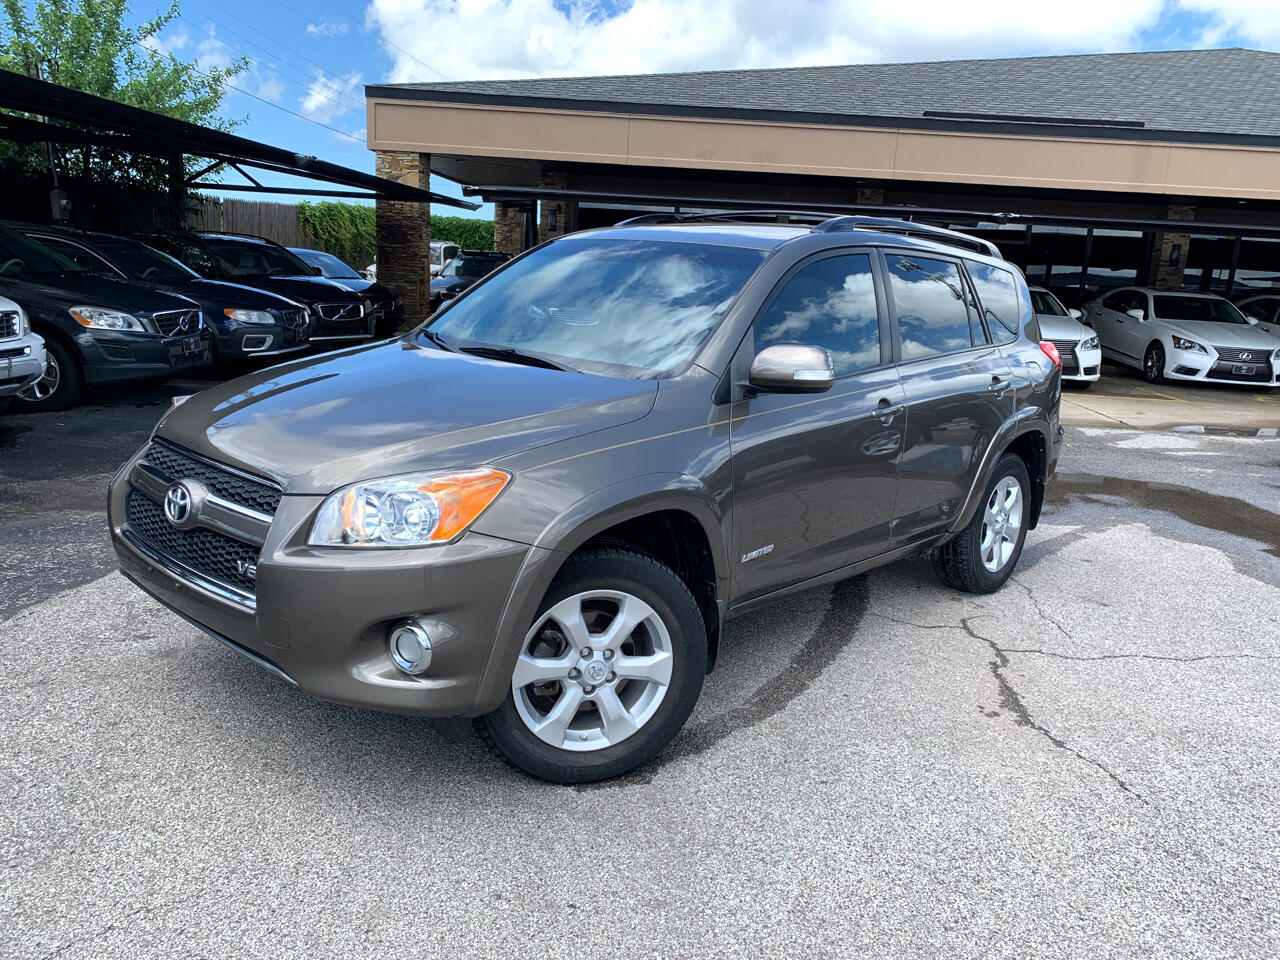 2009 Toyota RAV4 FWD 4dr V6 5-Spd AT Ltd (Natl)